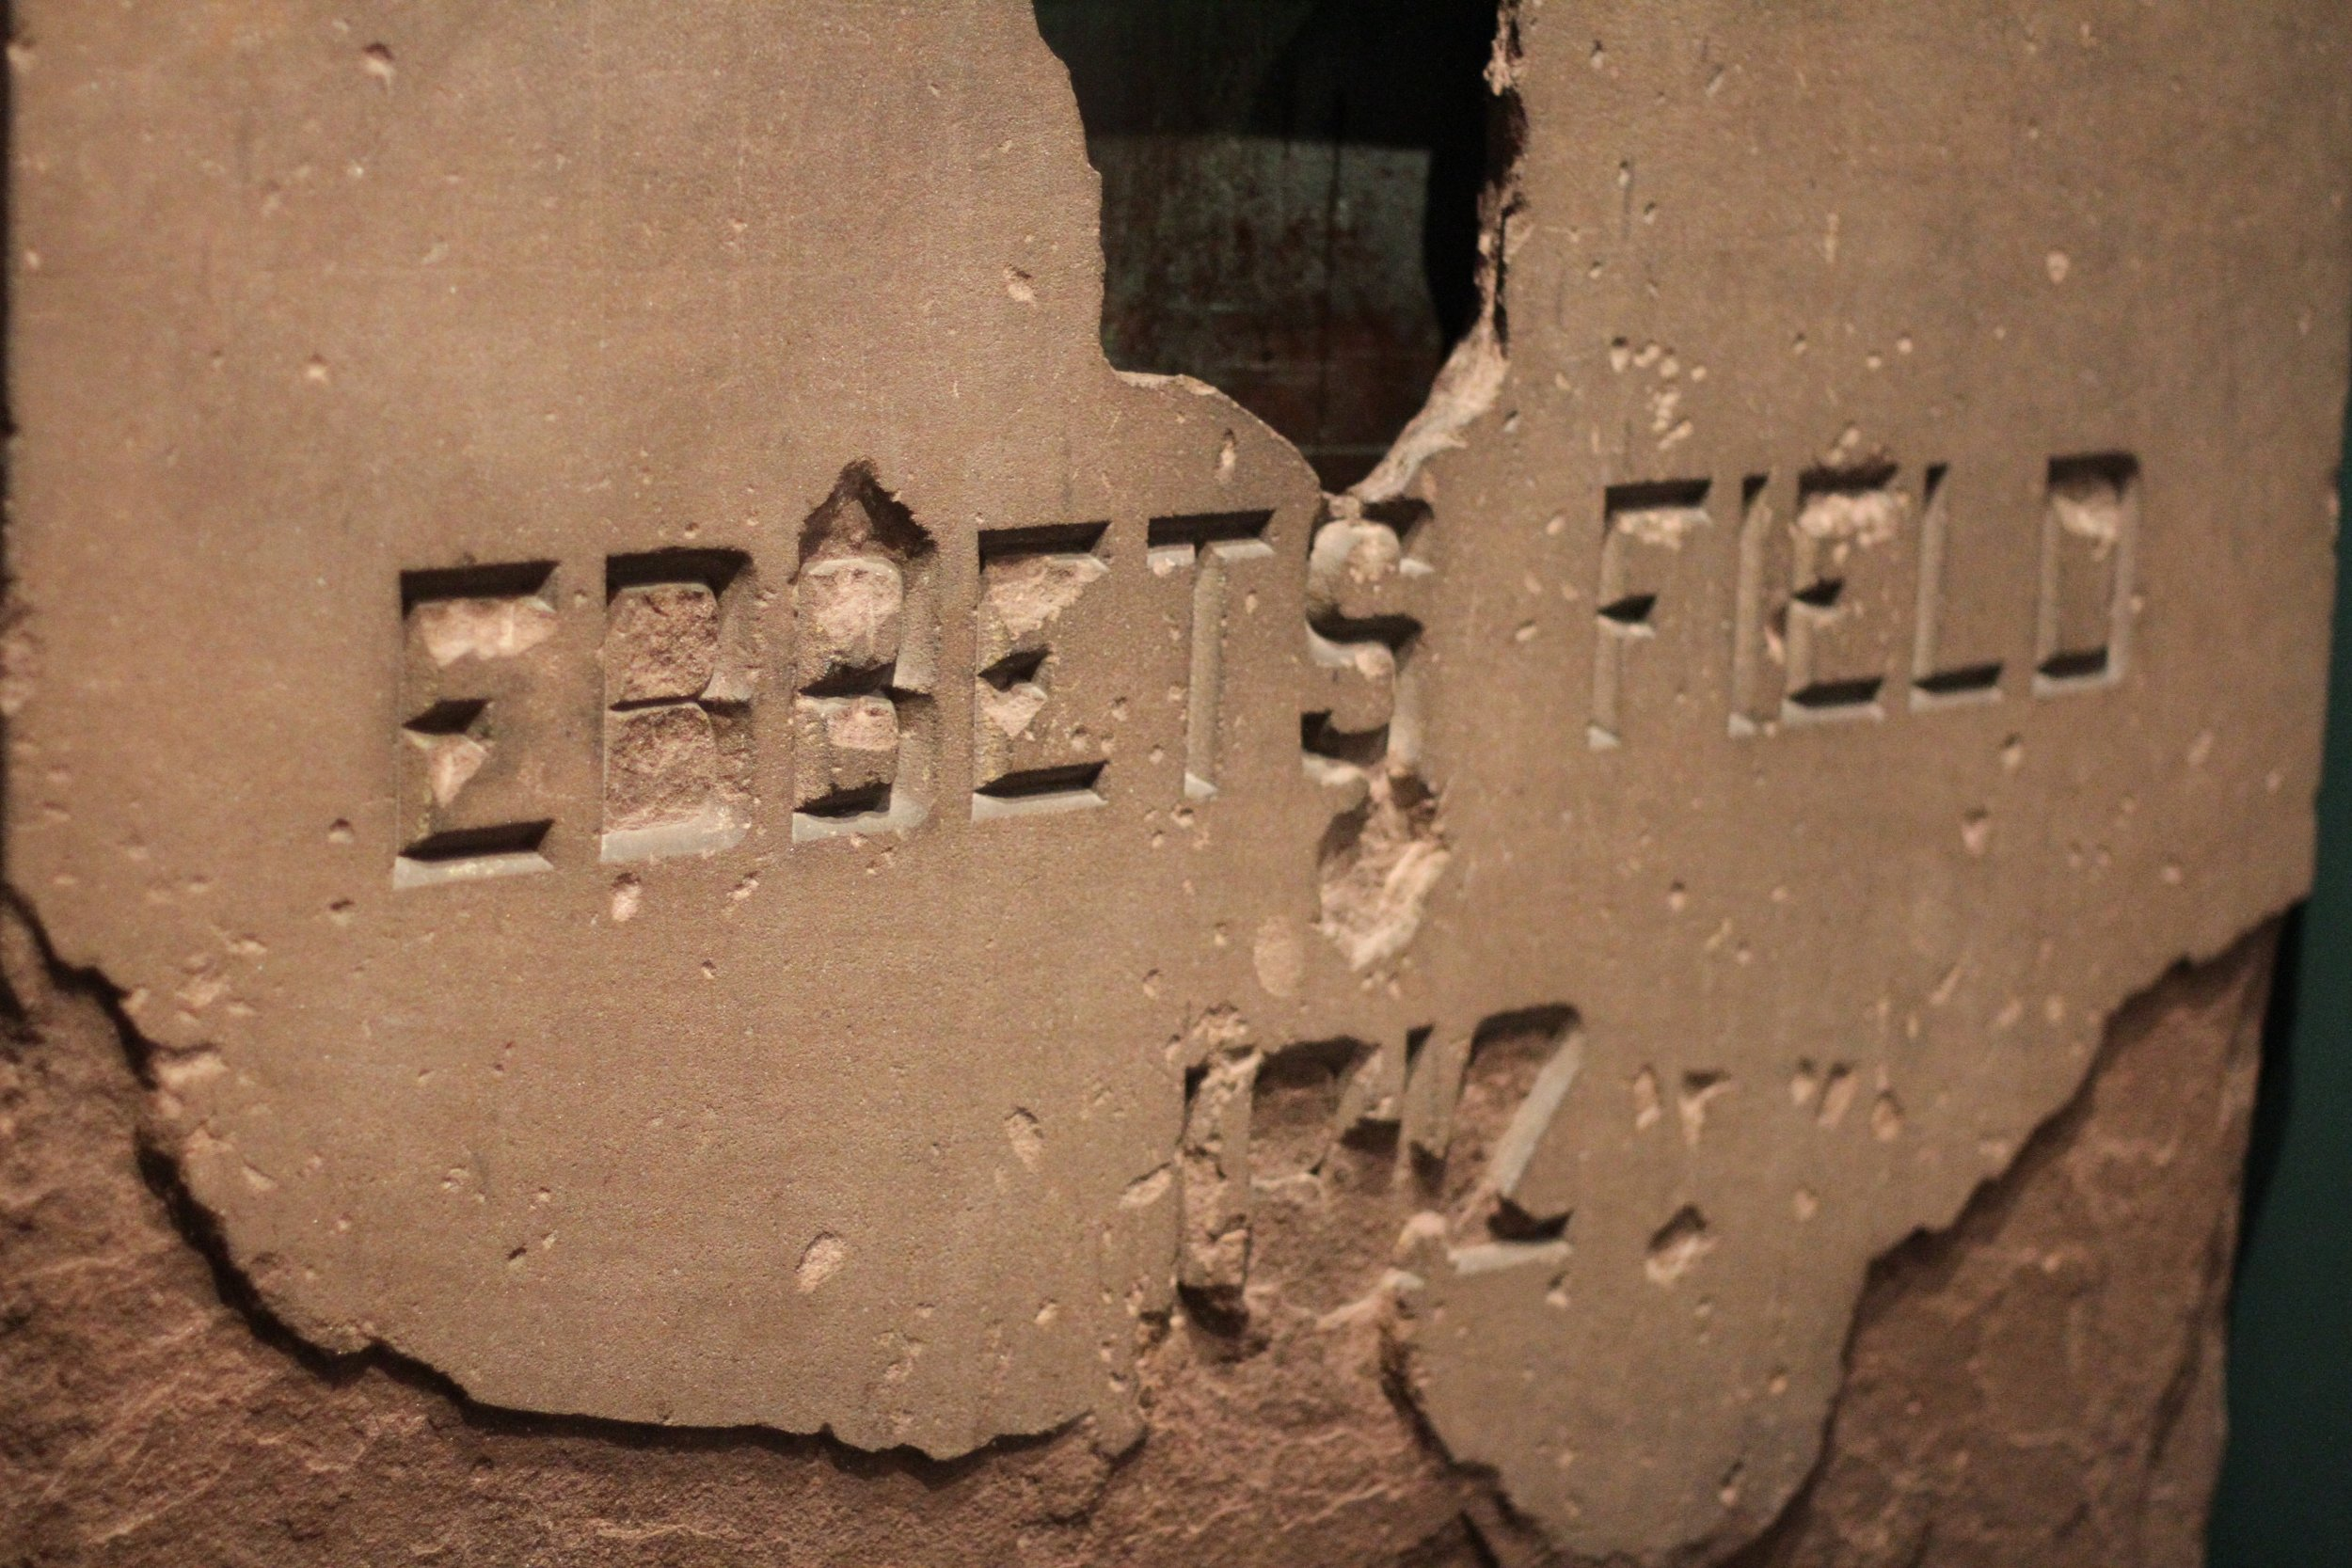 The cornerstone of Ebbets Field - 1912.